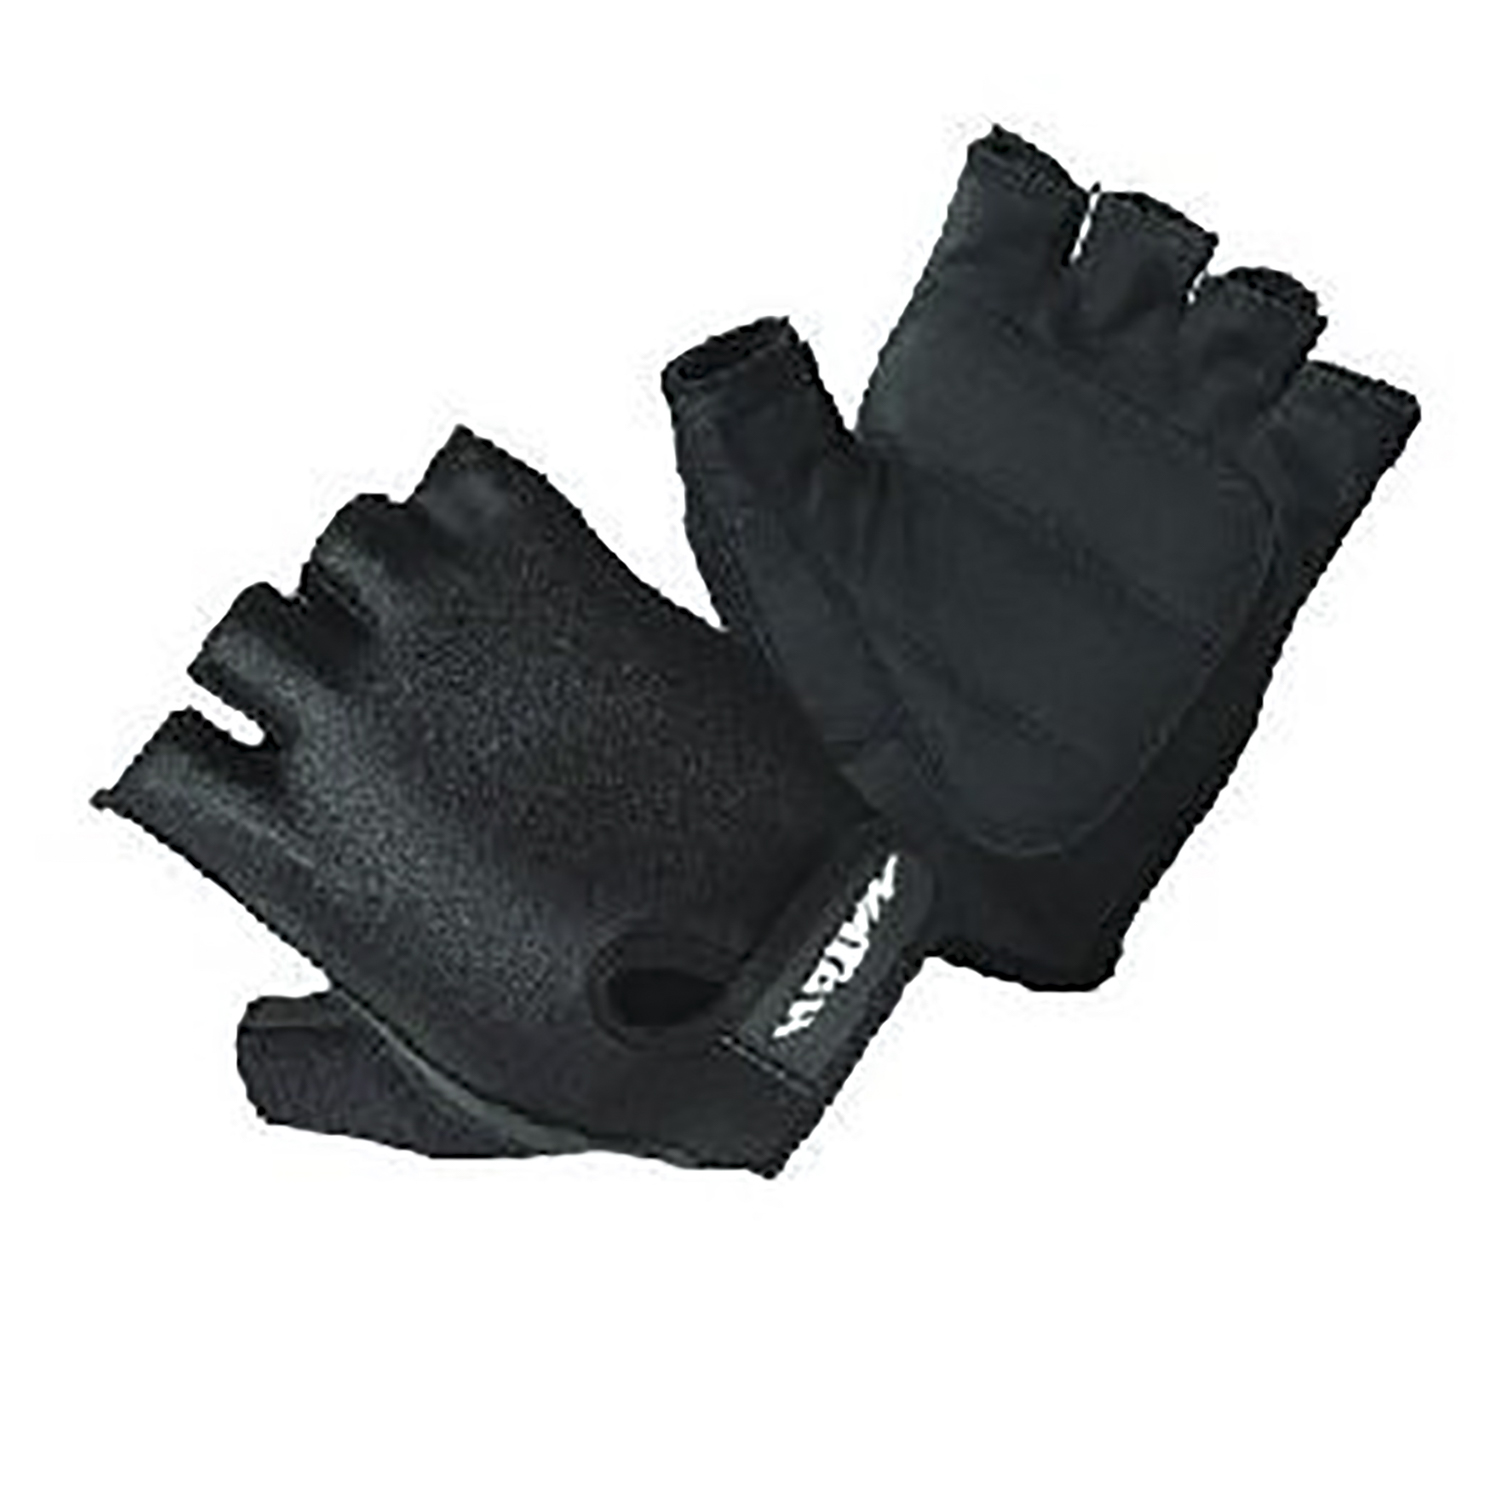 Hatch Lyrca Cycle Gloves